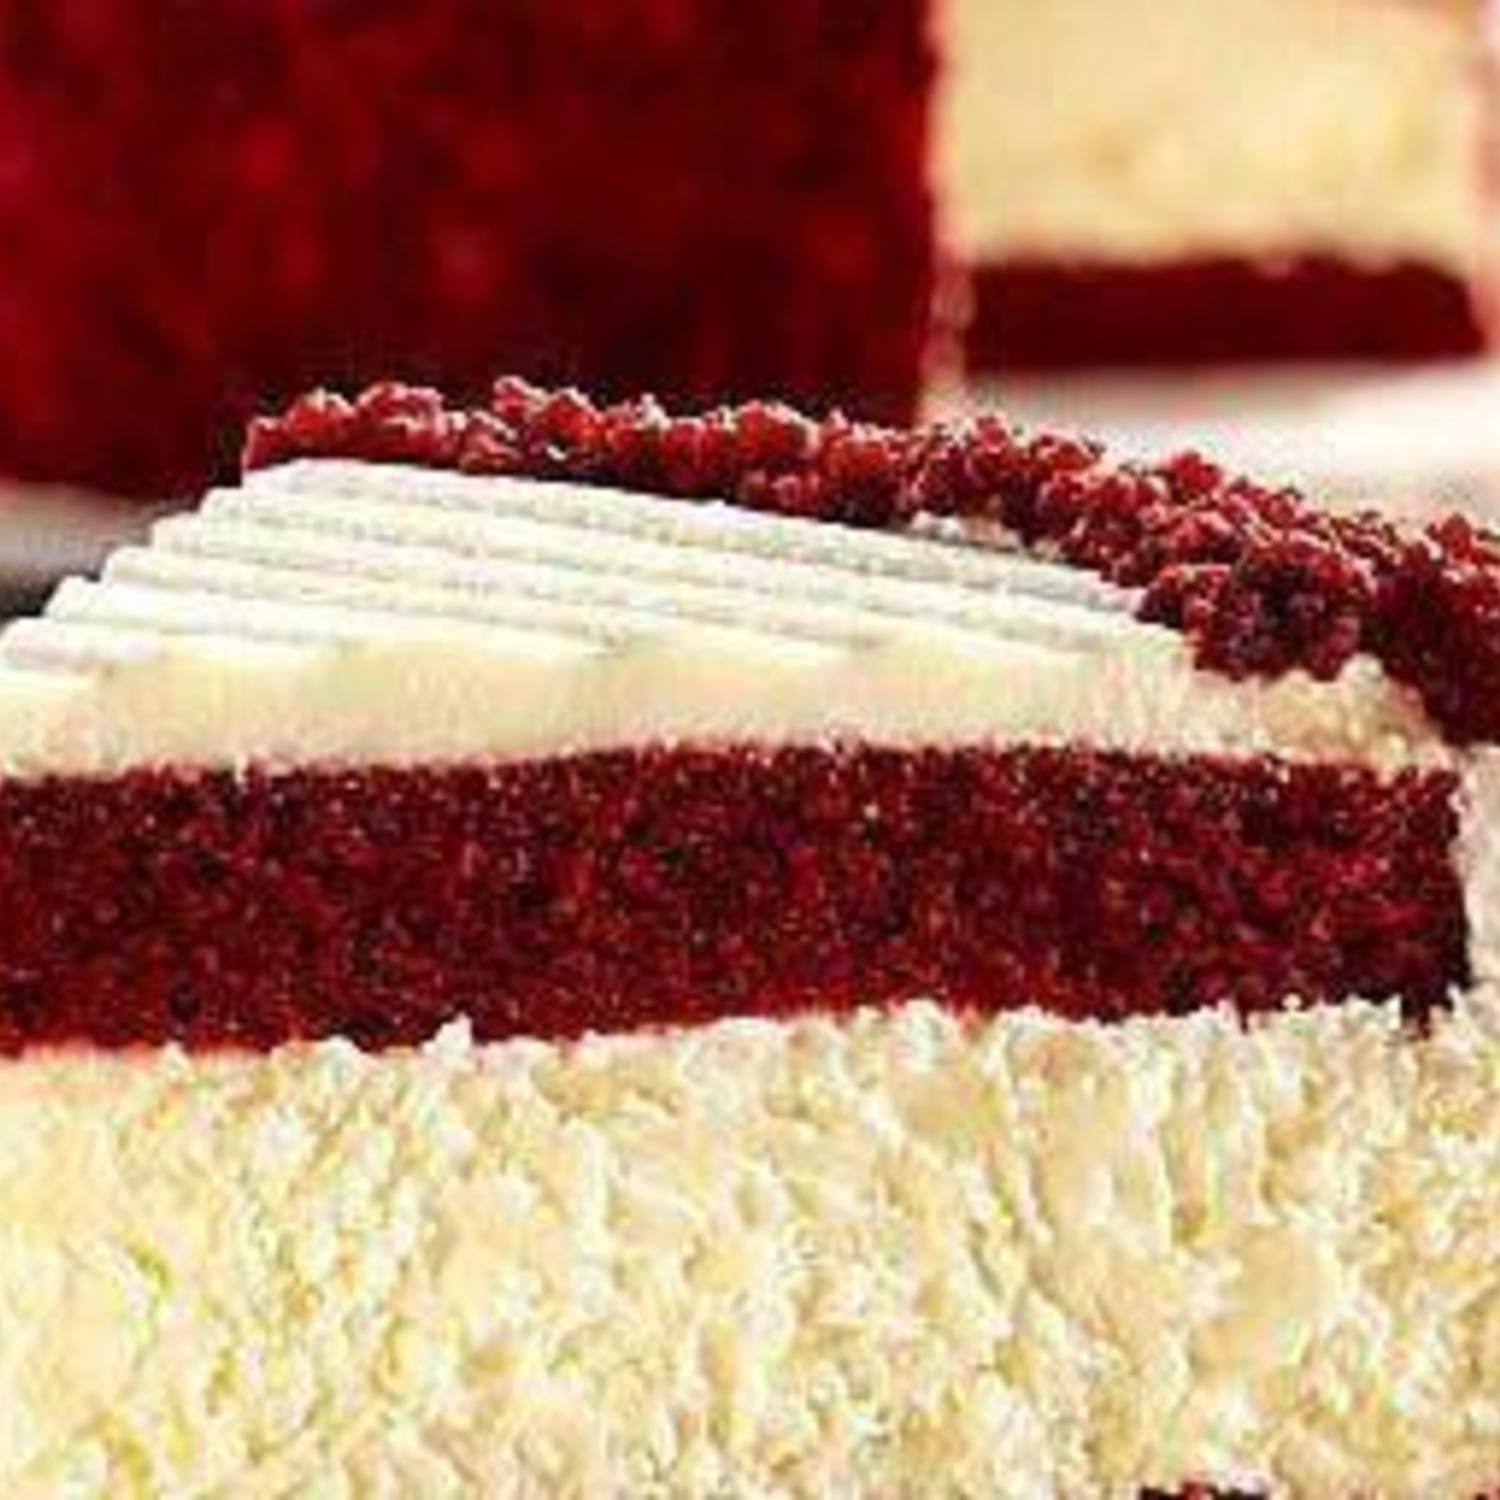 Red Velvet Cheesecake #redvelvetcheesecake